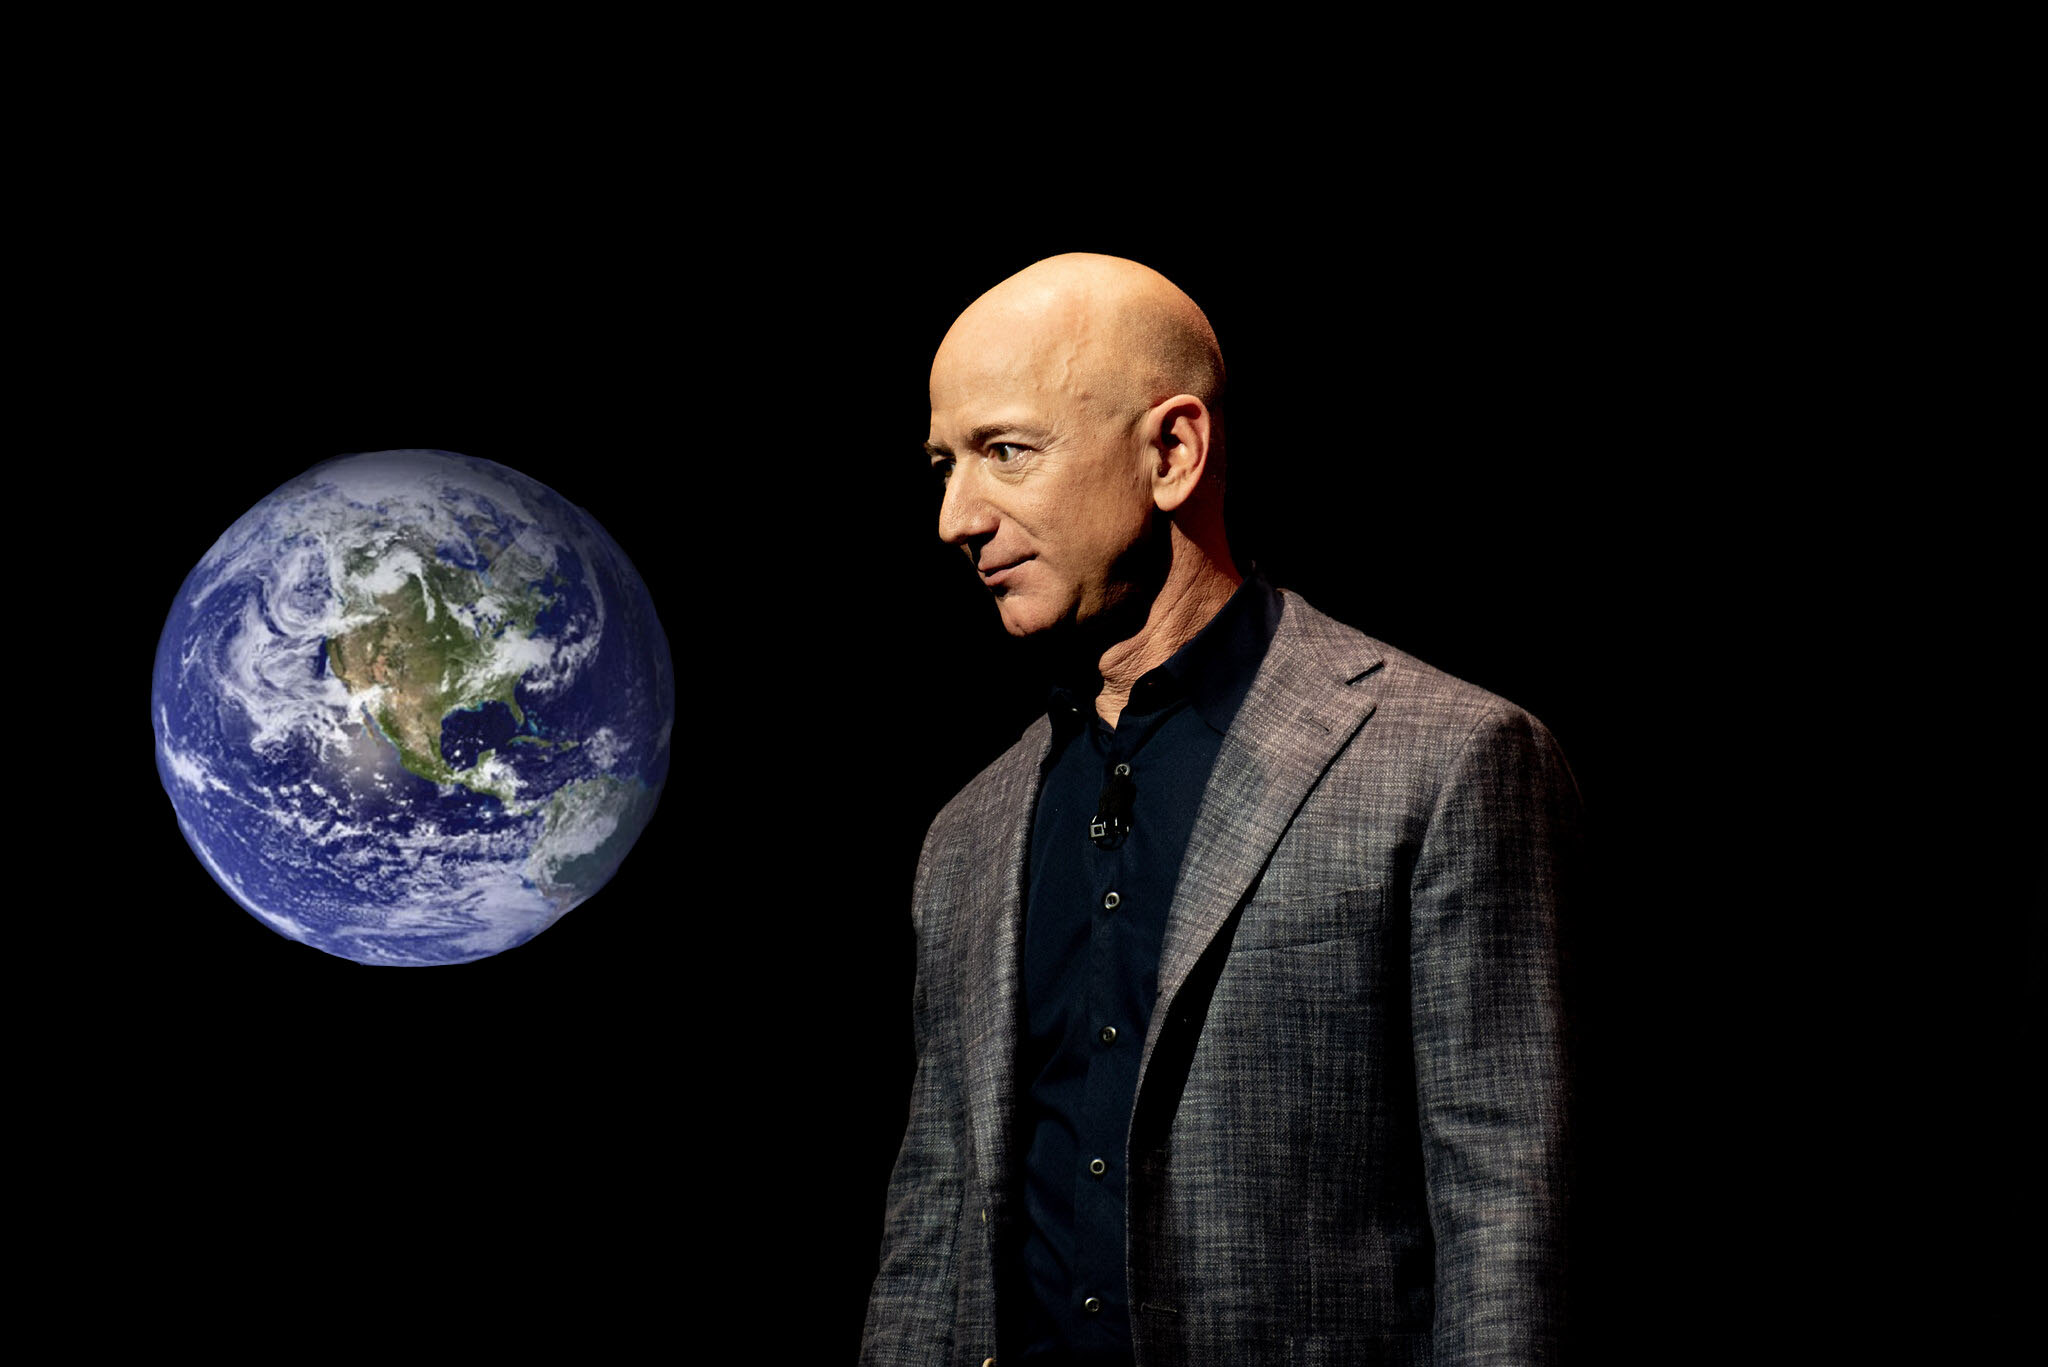 Jeff Bezos Going To Space To Get A Better Look At Earth Before Potentially Buying It